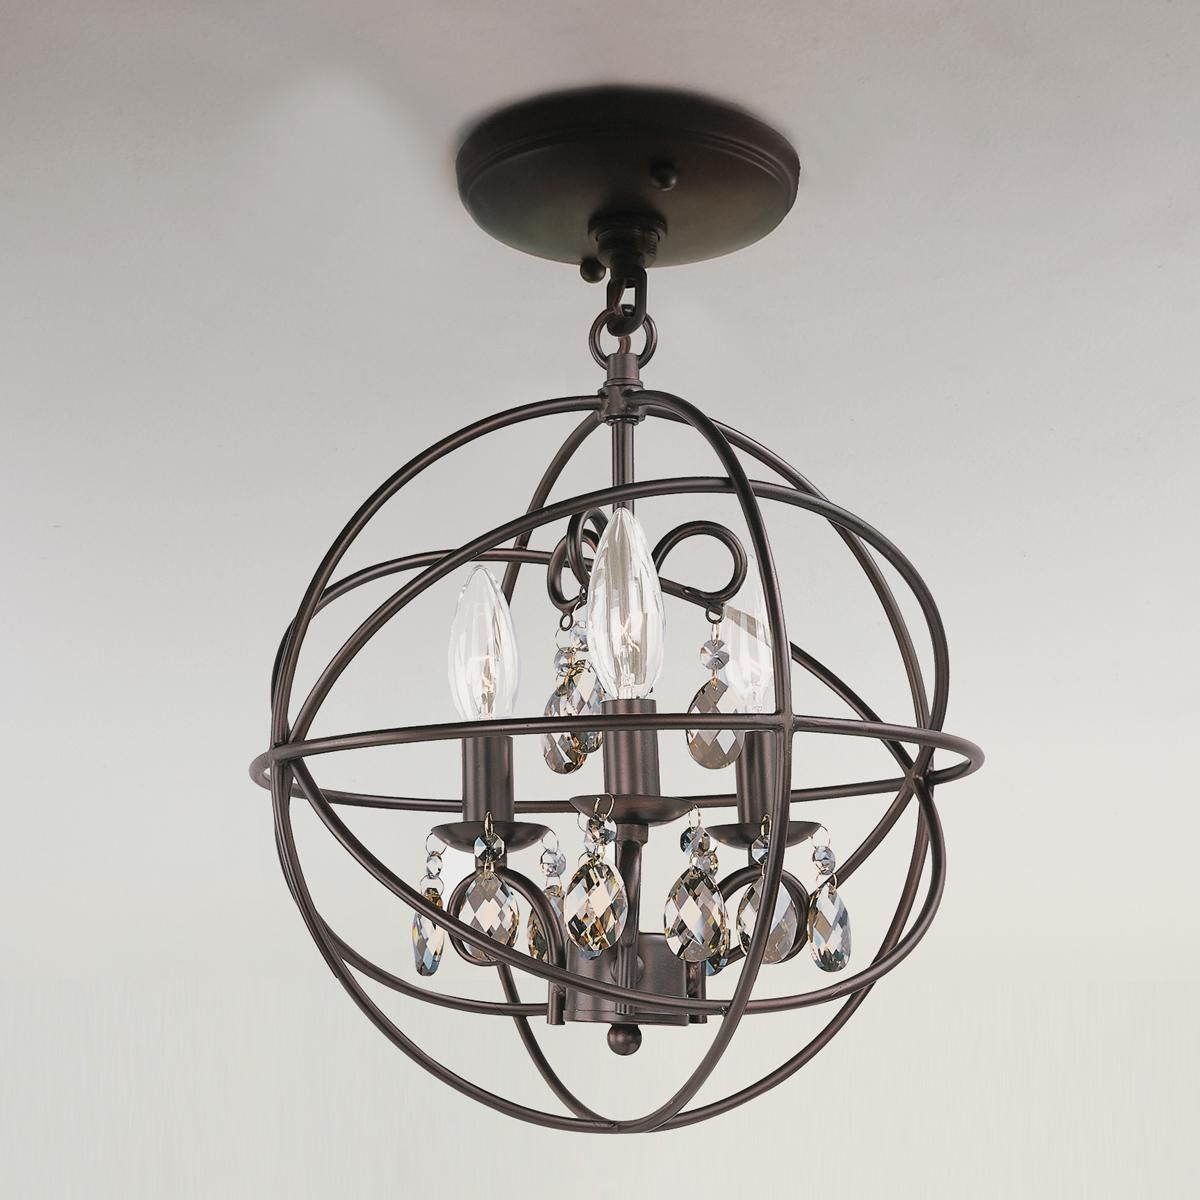 Master Intended For Fashionable La Sarre 3 Light Globe Chandeliers (View 19 of 20)